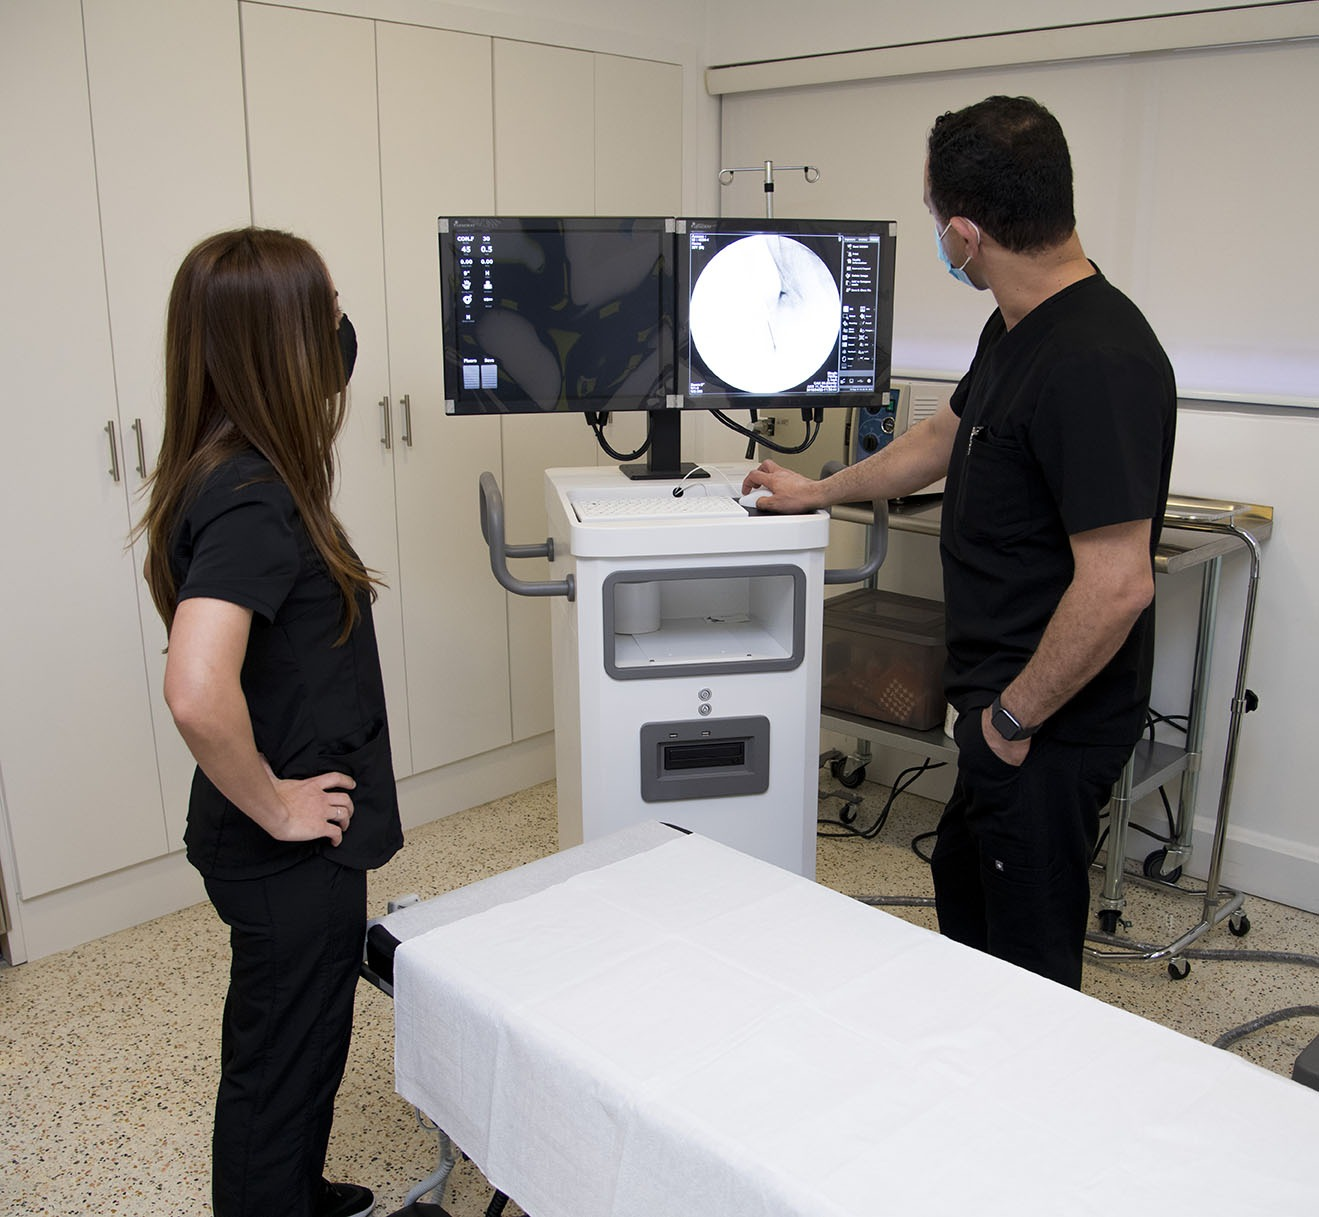 Two physicians looking at scan in a clinical setting